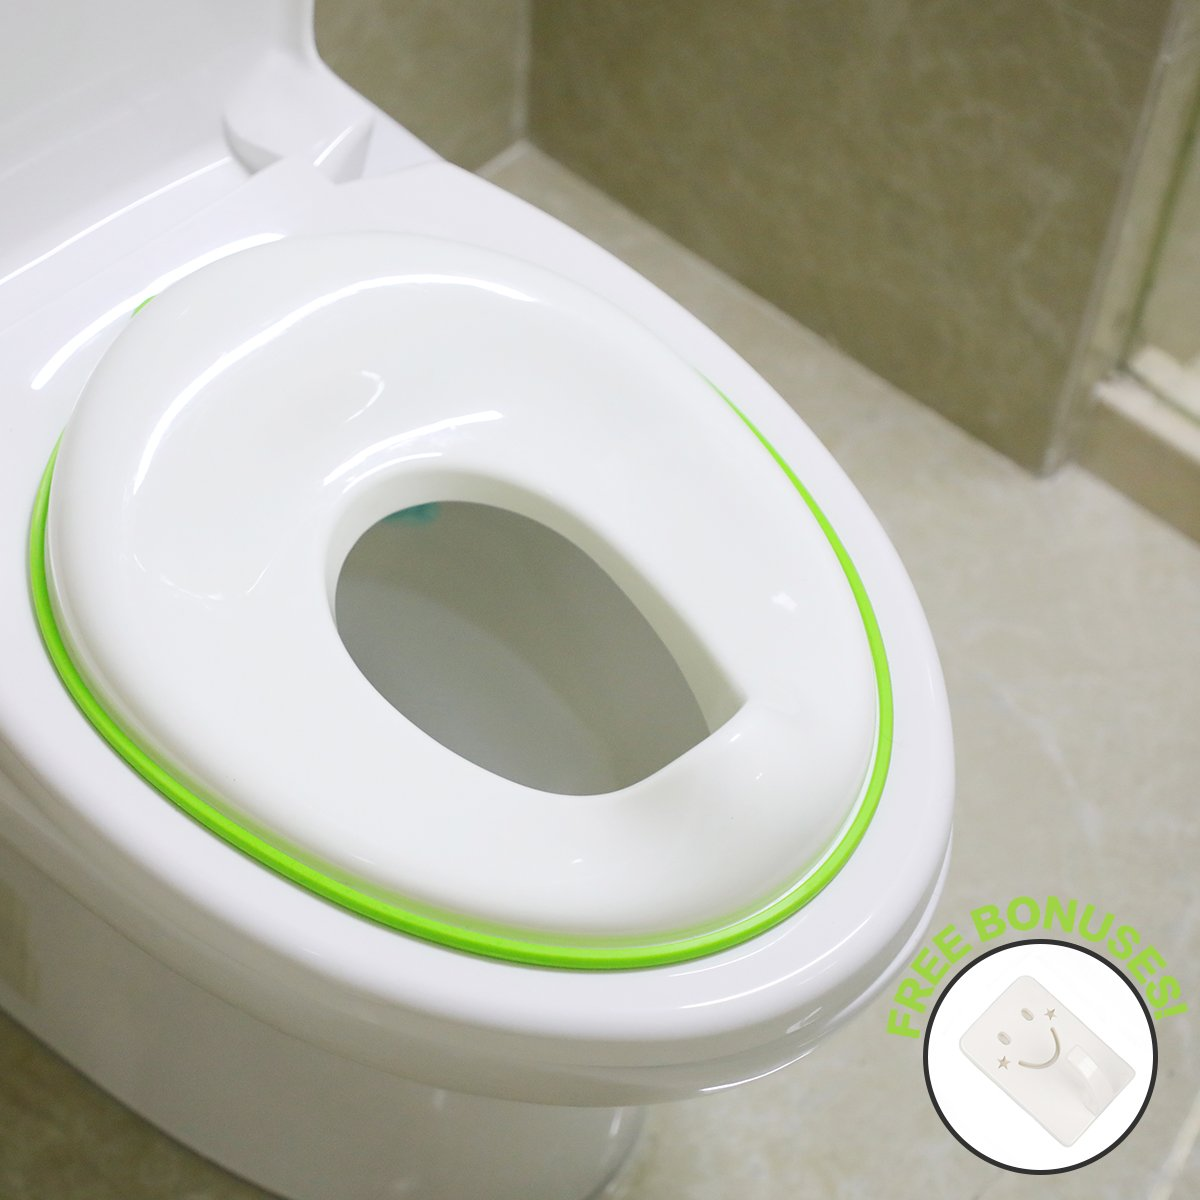 Potty Training Seat For Boys And Girls,Fits Round And Oval Toilets, Toilet Seat For Toddlers,Green LTD